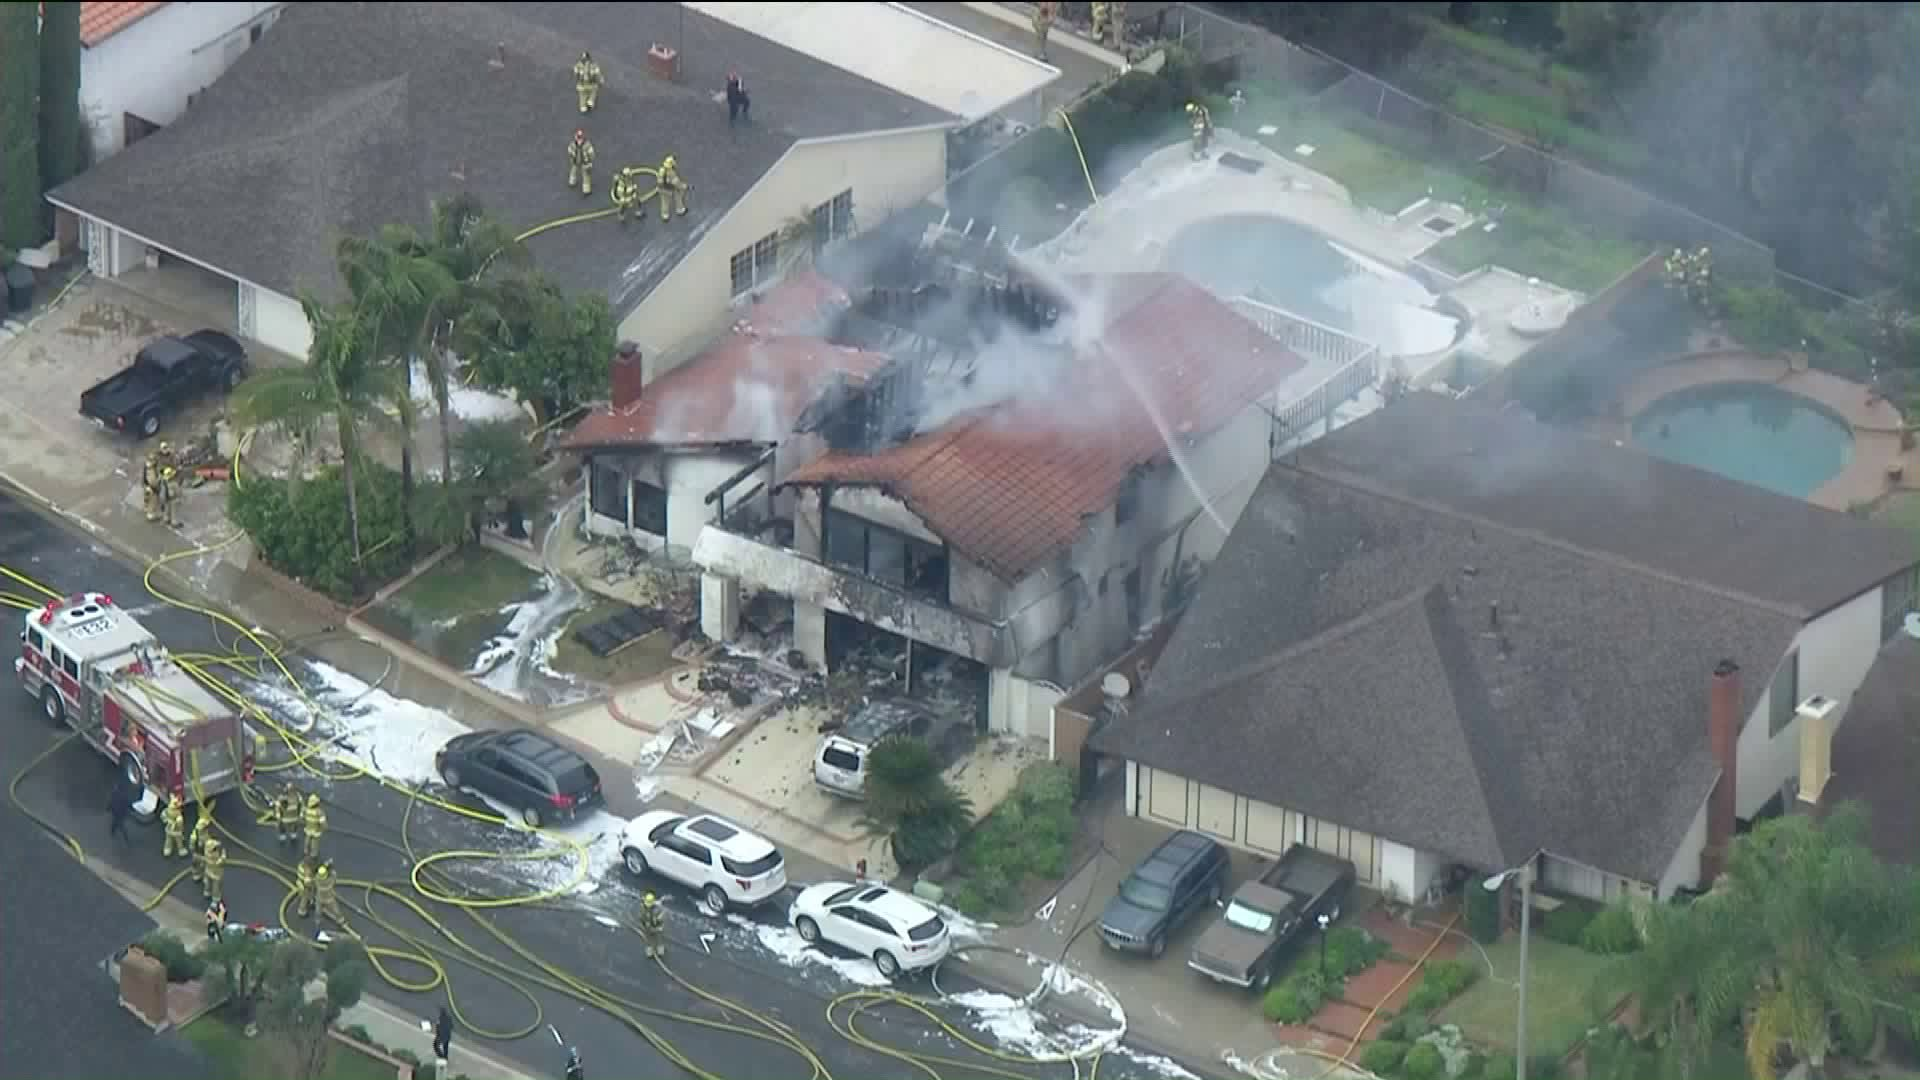 A house destroyed by flames is seen shortly after a small plane crash in Yorba Linda on Feb. 3, 2019. (Credit: KTLA)